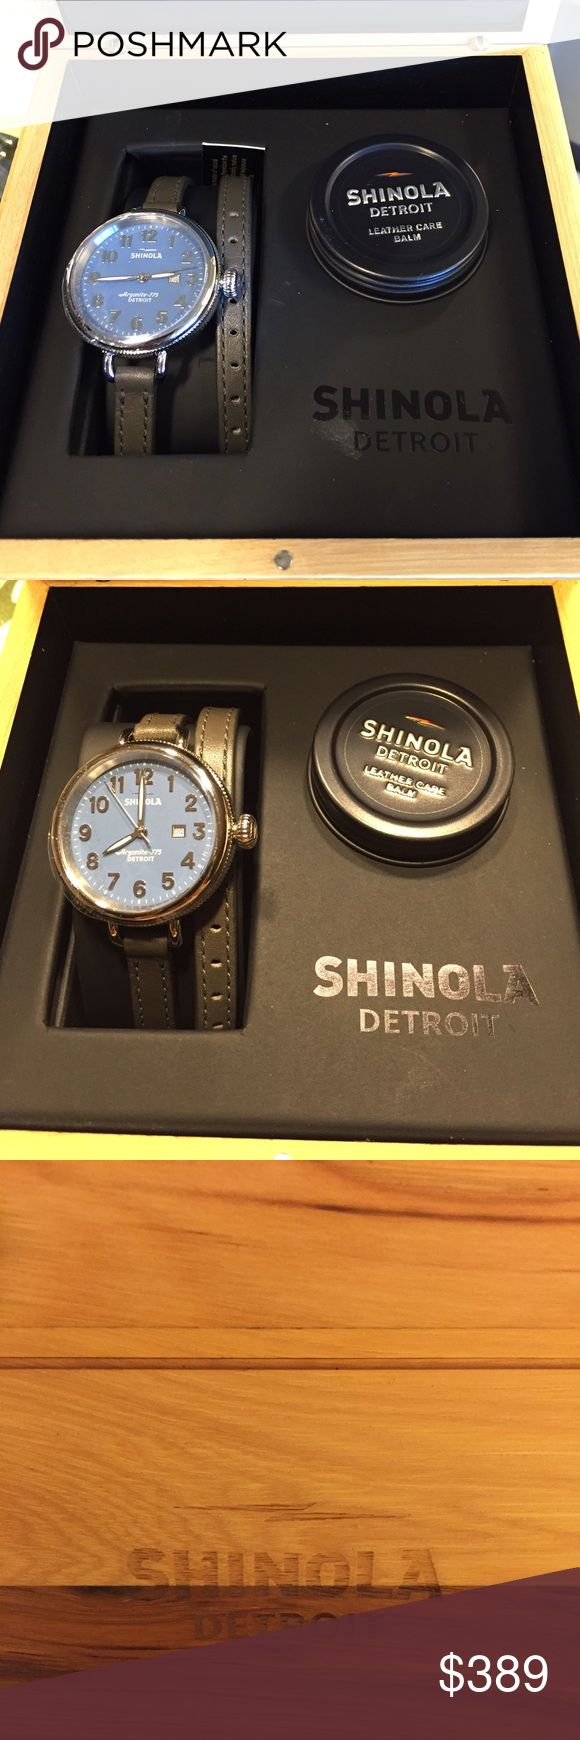 FINAL SALE -- NWT SHINOLA WRAP WATCH HOT ITEM - FINAL MARKDOWN. BRAND NEW with TAGS -- WOMEN's SHINOLA WATCH FOR SALE! Priced to Sell! No TRADES, no PAYPAL! Shinola Accessories Watches